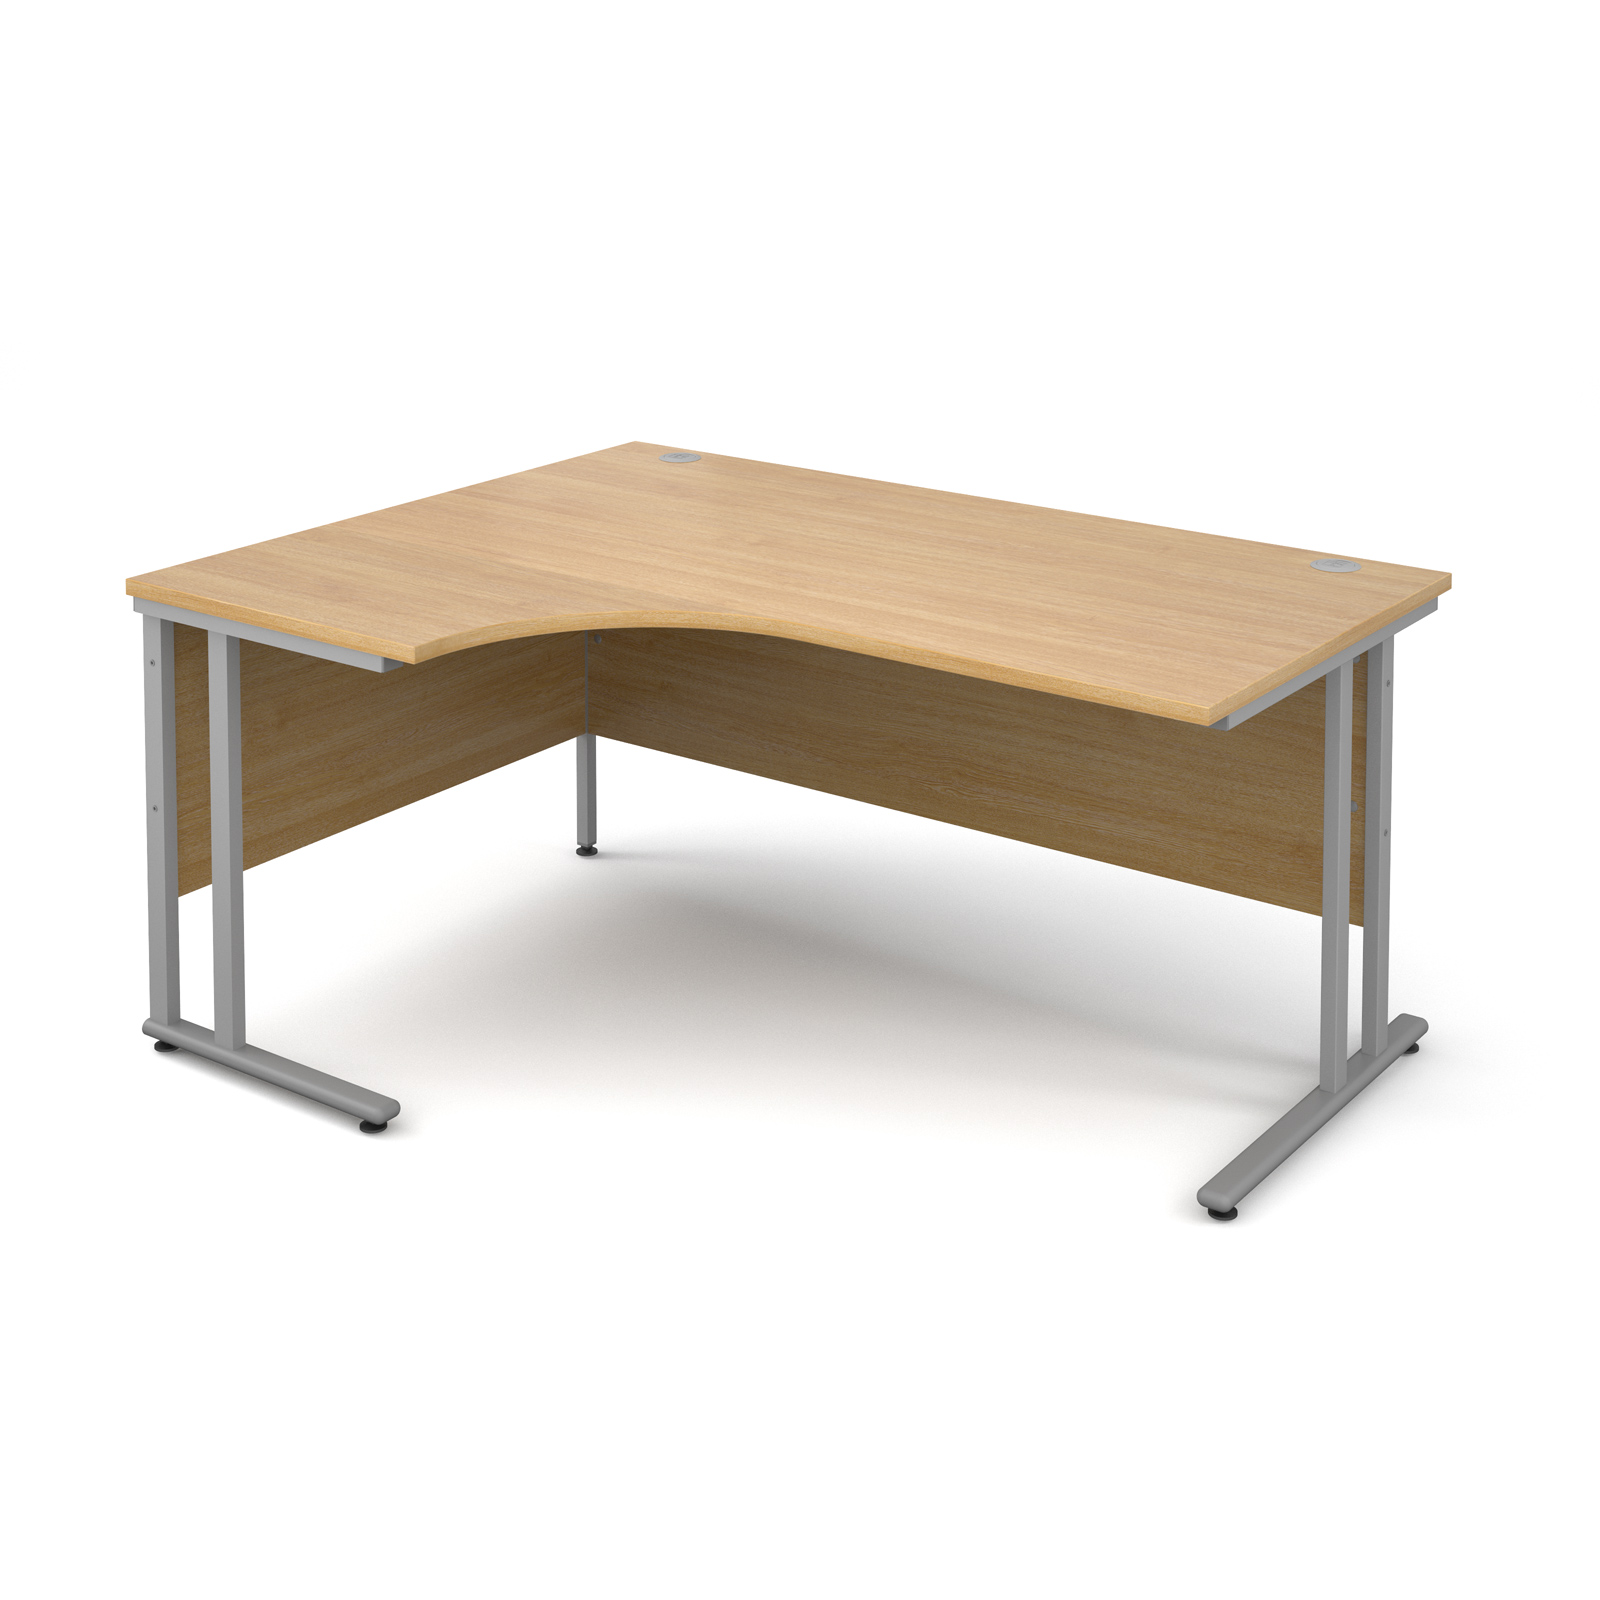 Maestro 25 SL left hand ergonomic desk 1600mm - silver cantilever frame, oak top